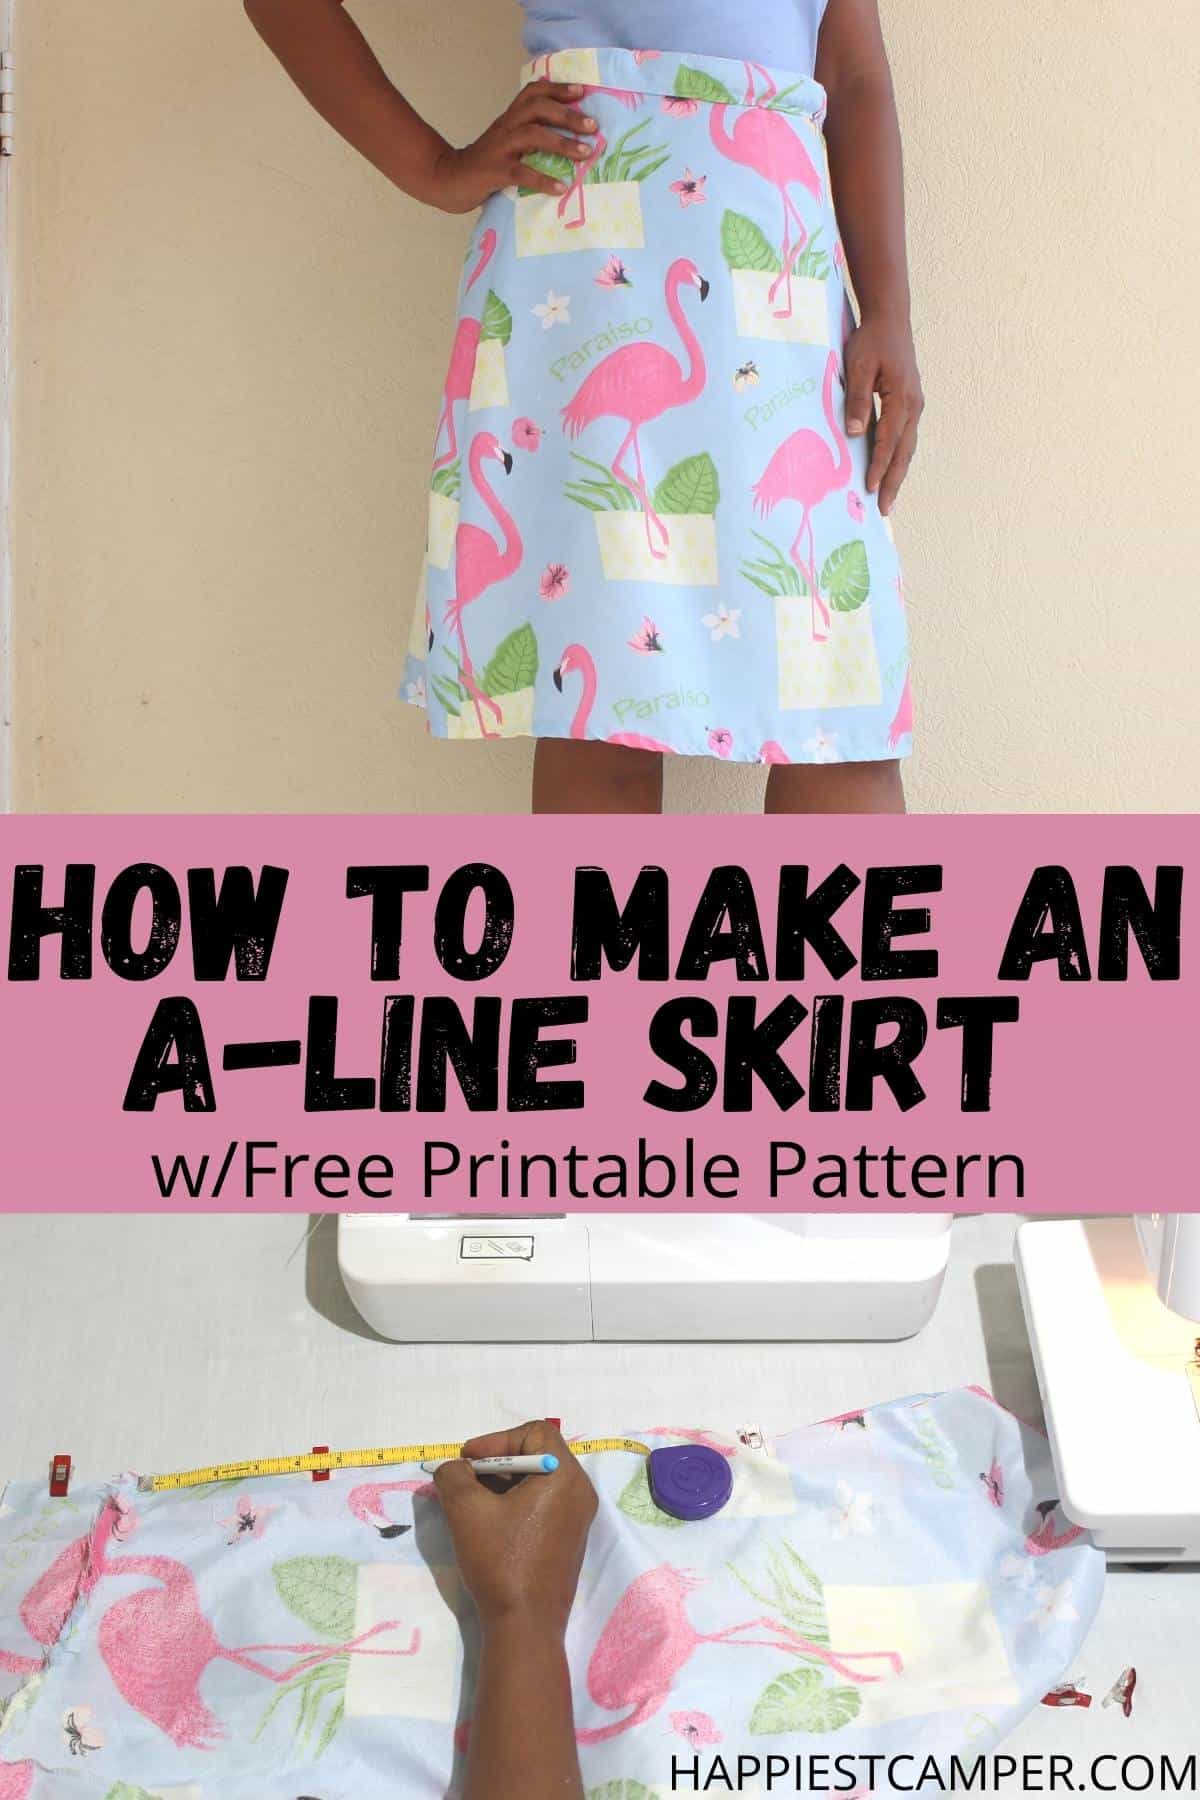 How To Make An A-Line Skirt With Free Pattern